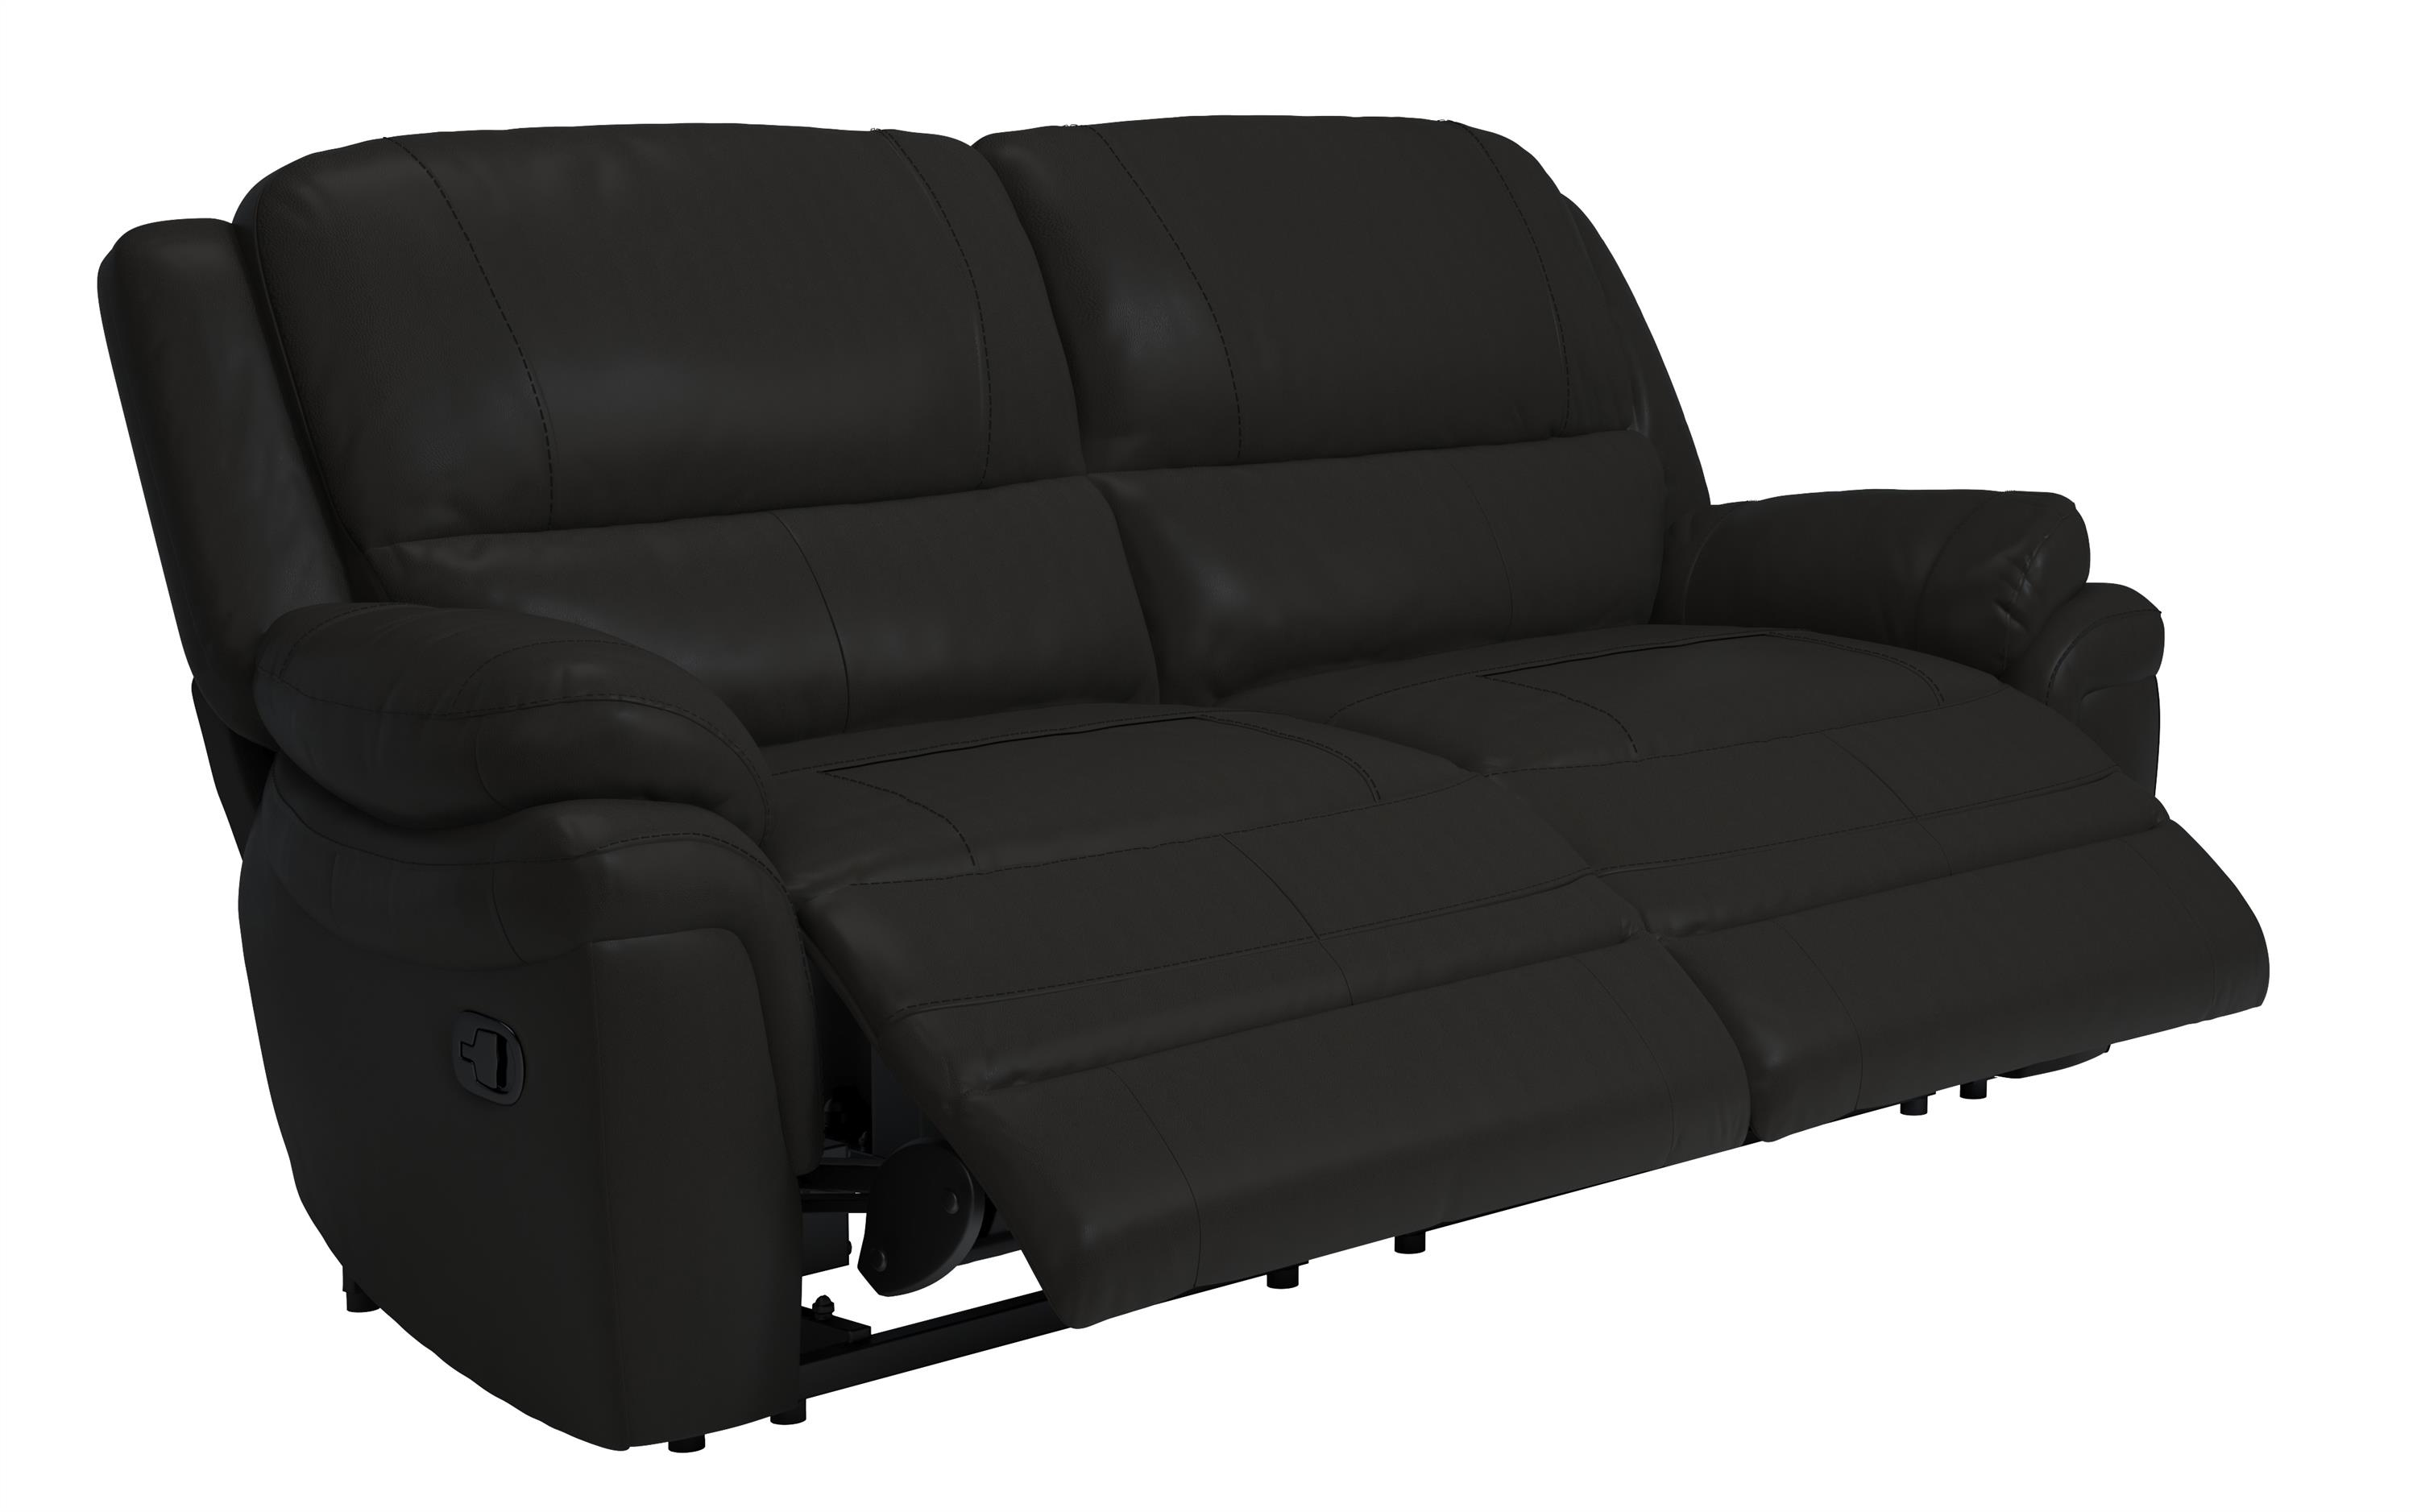 Pluto 3 Seater Manual Recliner Sofa